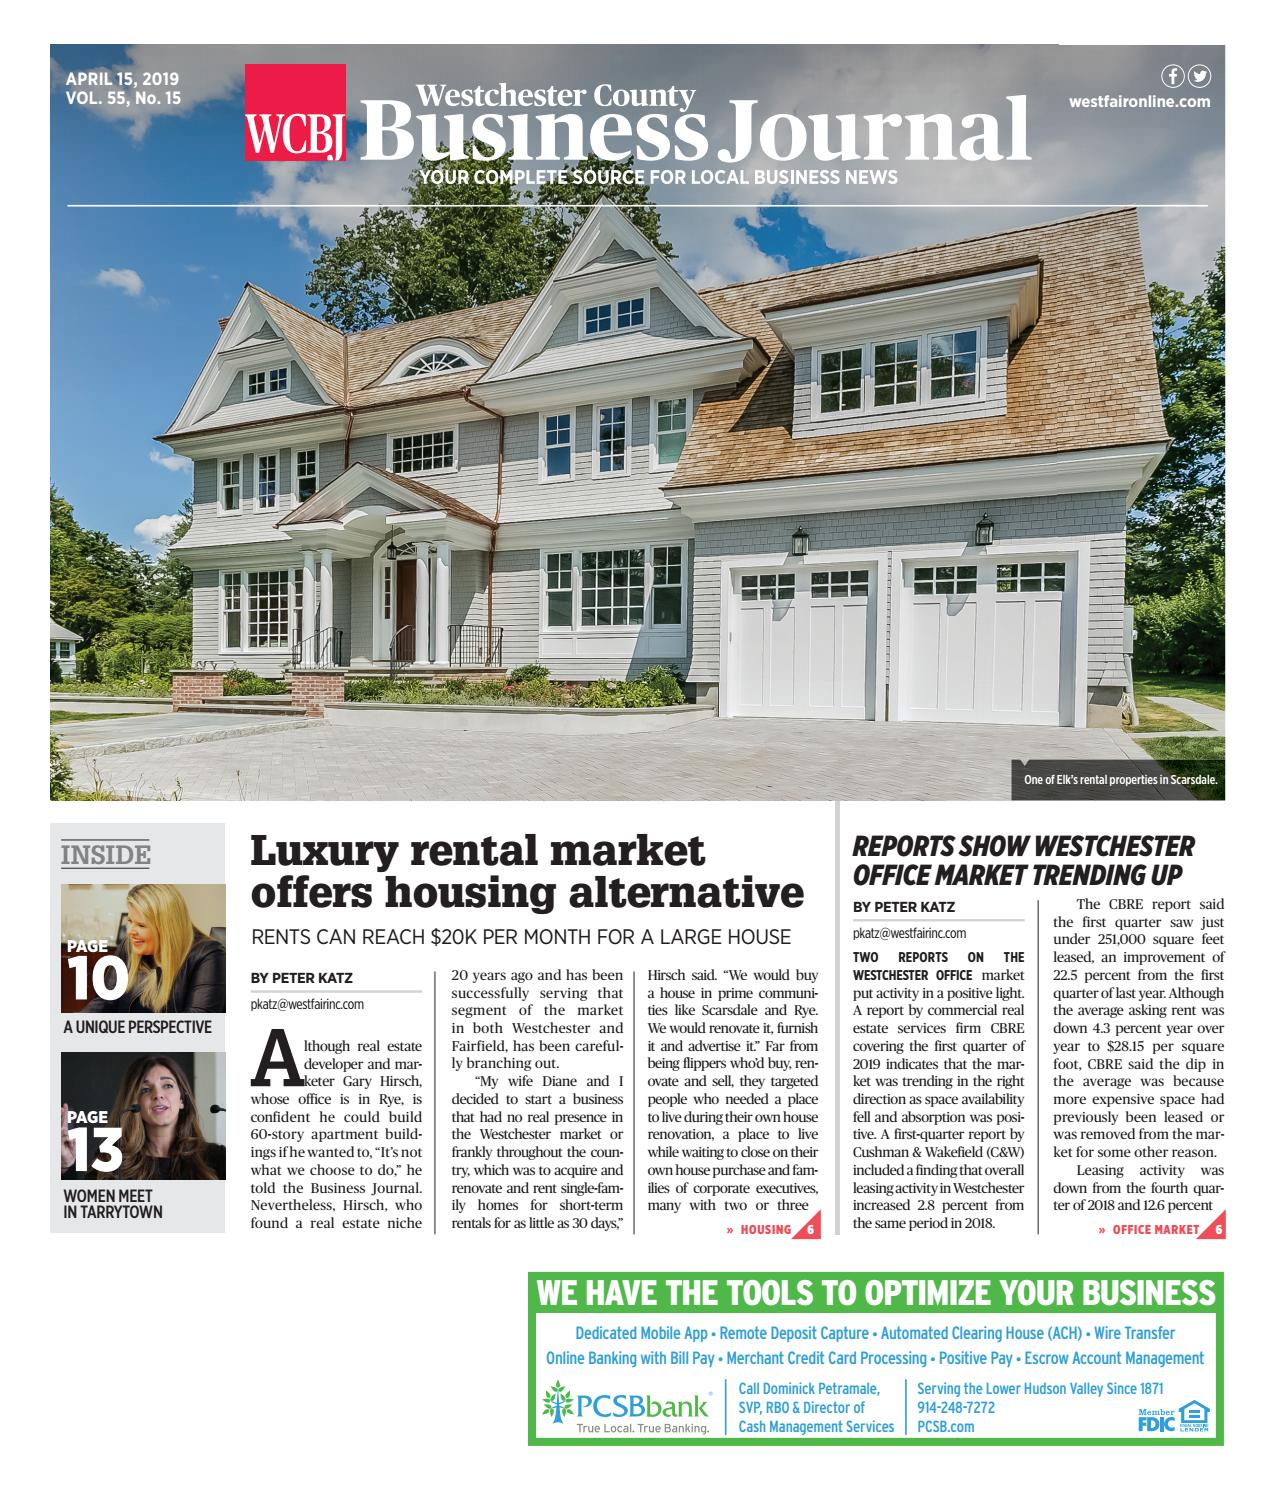 Westchester County Business Journal 041519 by Wag Magazine